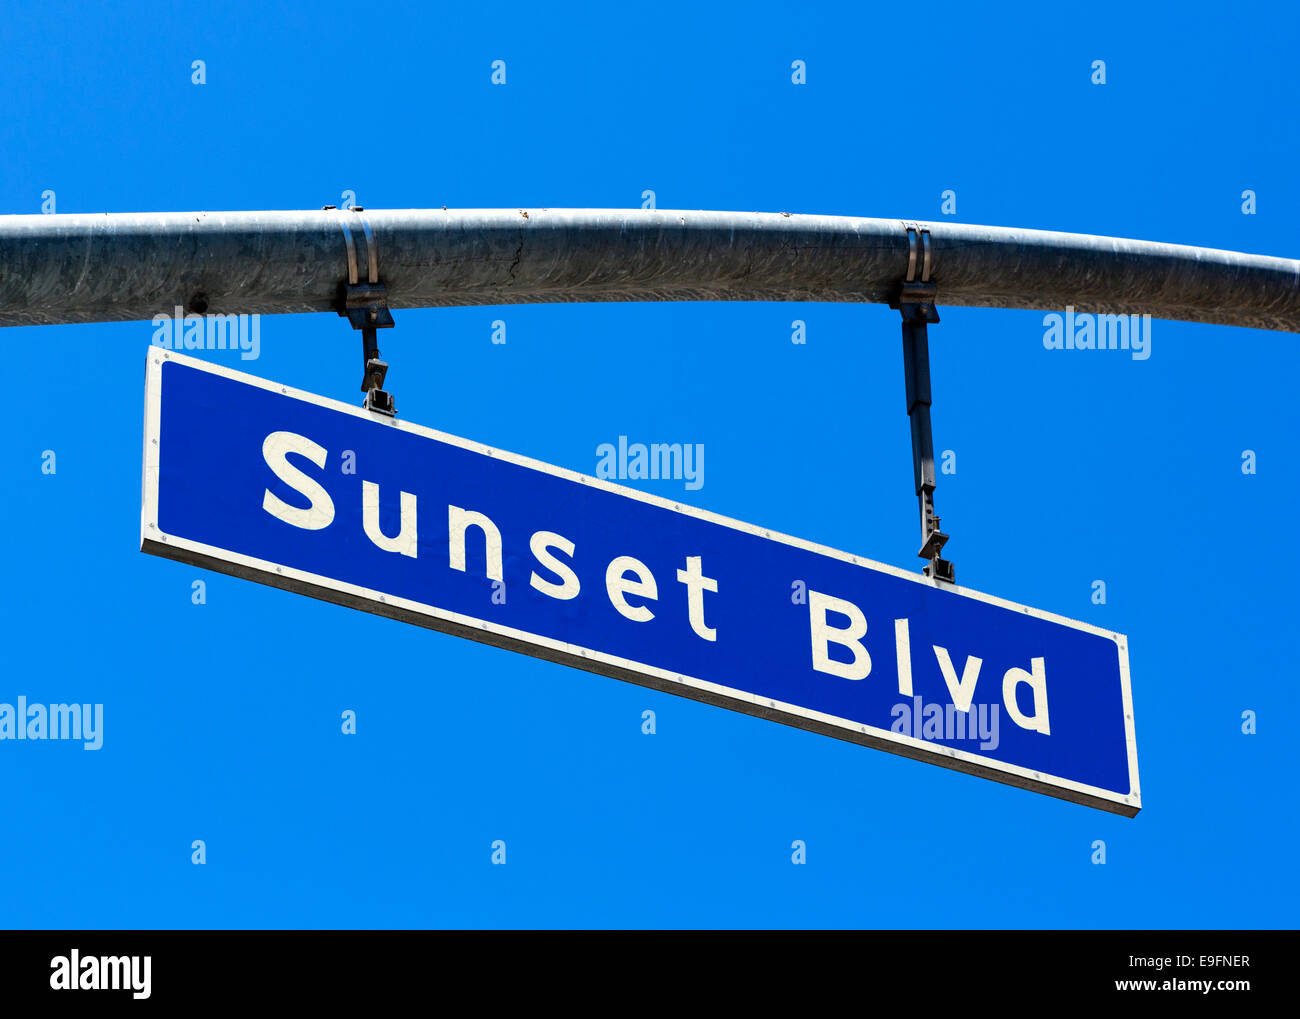 Sunset Boulevard street sign, West Hollywood, Los Angeles, California, USA - Stock Image